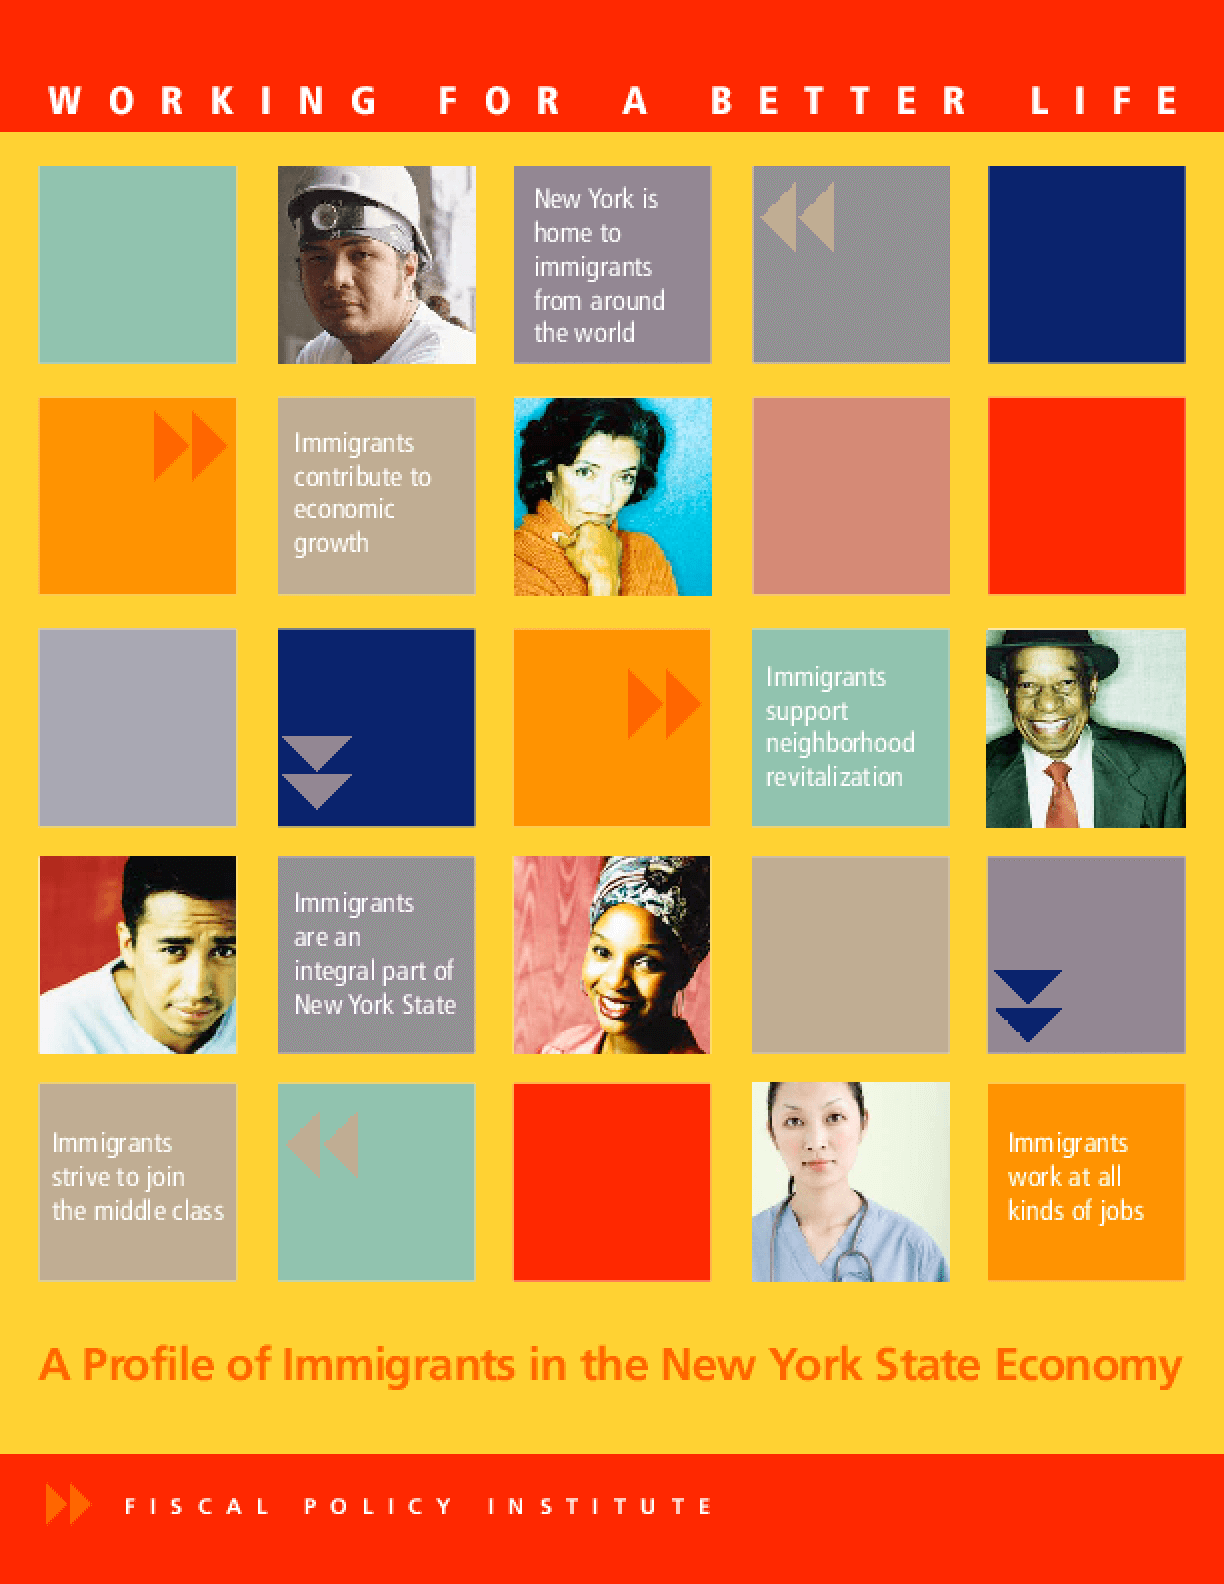 Working for a Better Life: A Profile of Immigrants in the New York State Economy